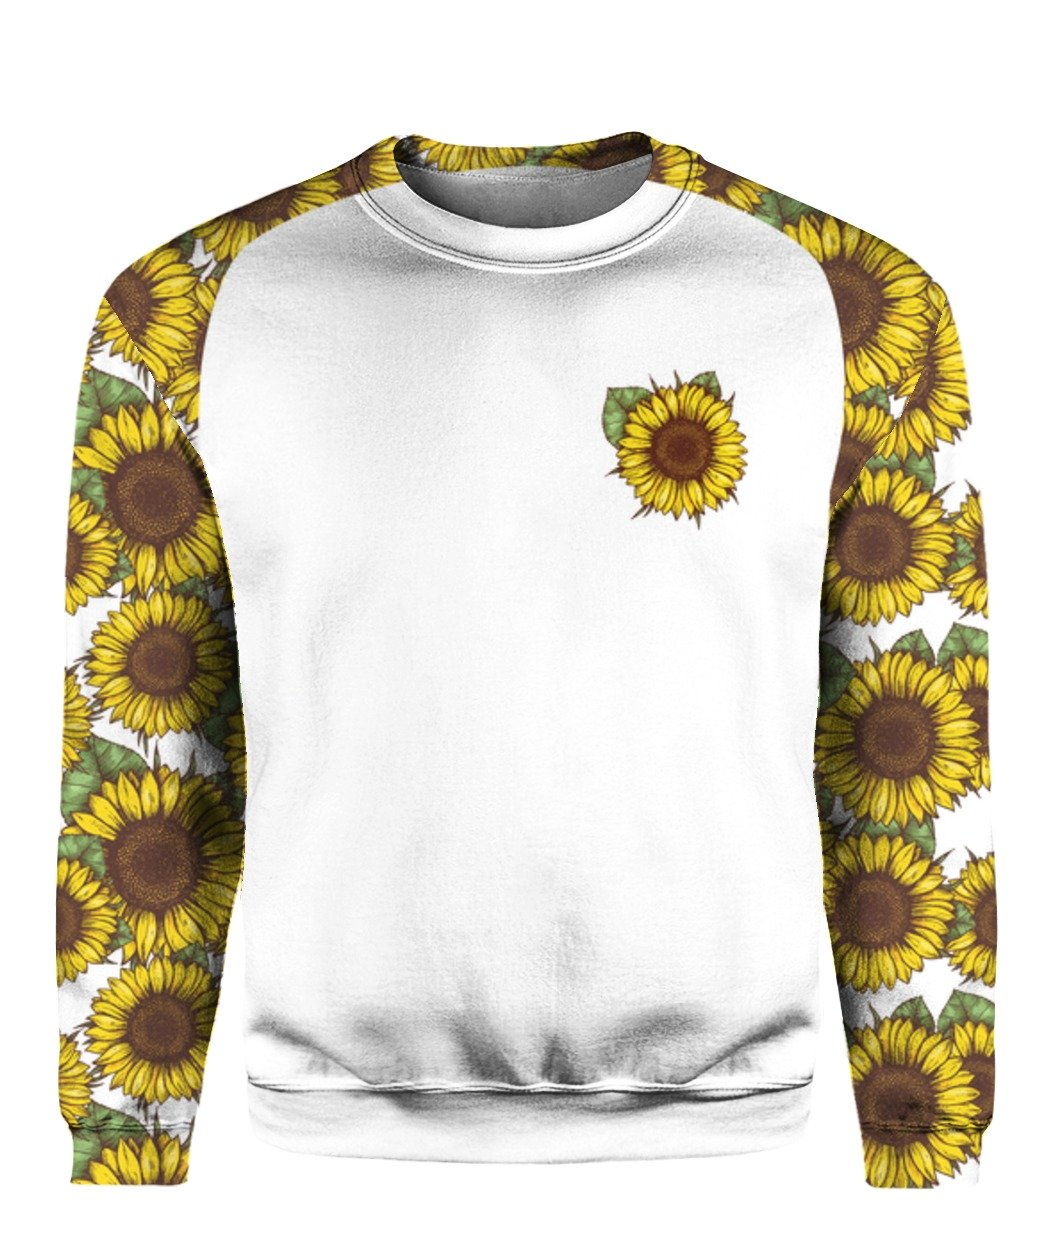 I'm blunt because god rolled me that way sunflower all over print sweatshirt